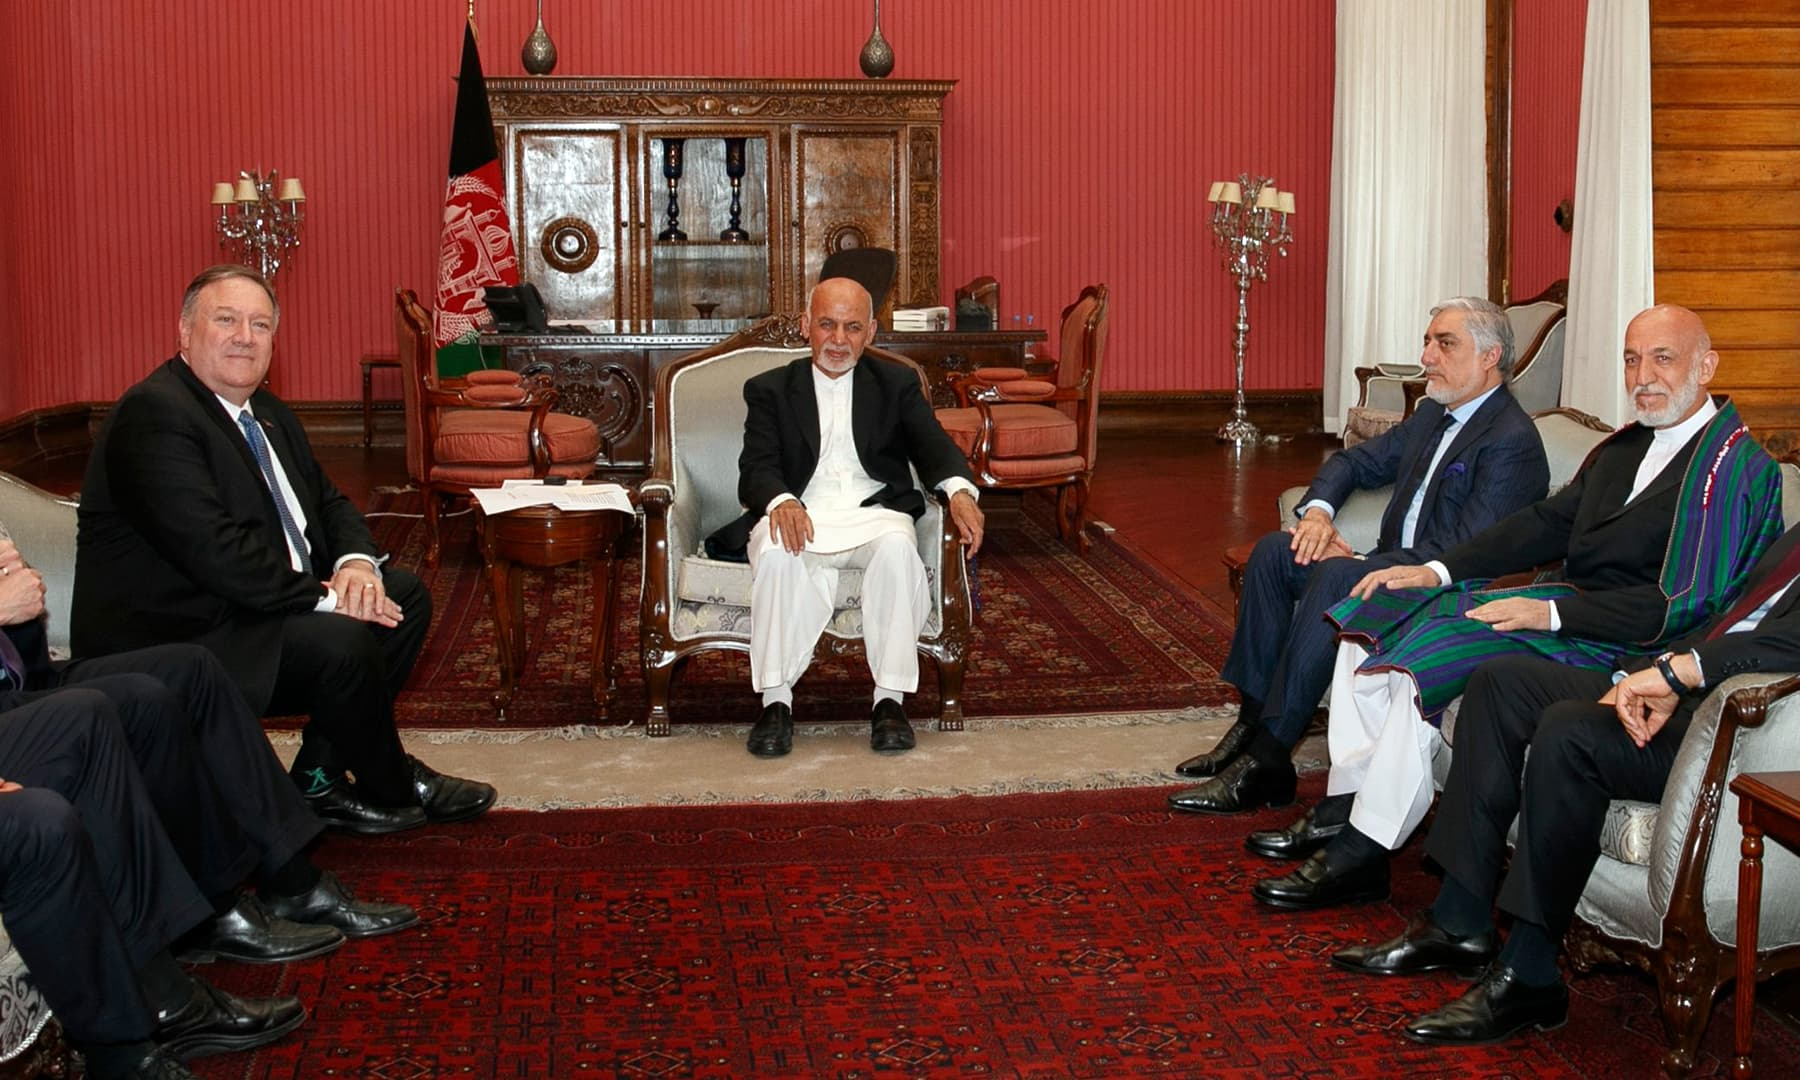 Secretary of State Mike Pompeo, left, meets with Afghan President Ashraf Ghani, Afghan Chief Executive Officer Abdullah Abdullah, and former Afghan President Hamid Karzai, right, at the Presidential Palace in Kabul. — AP